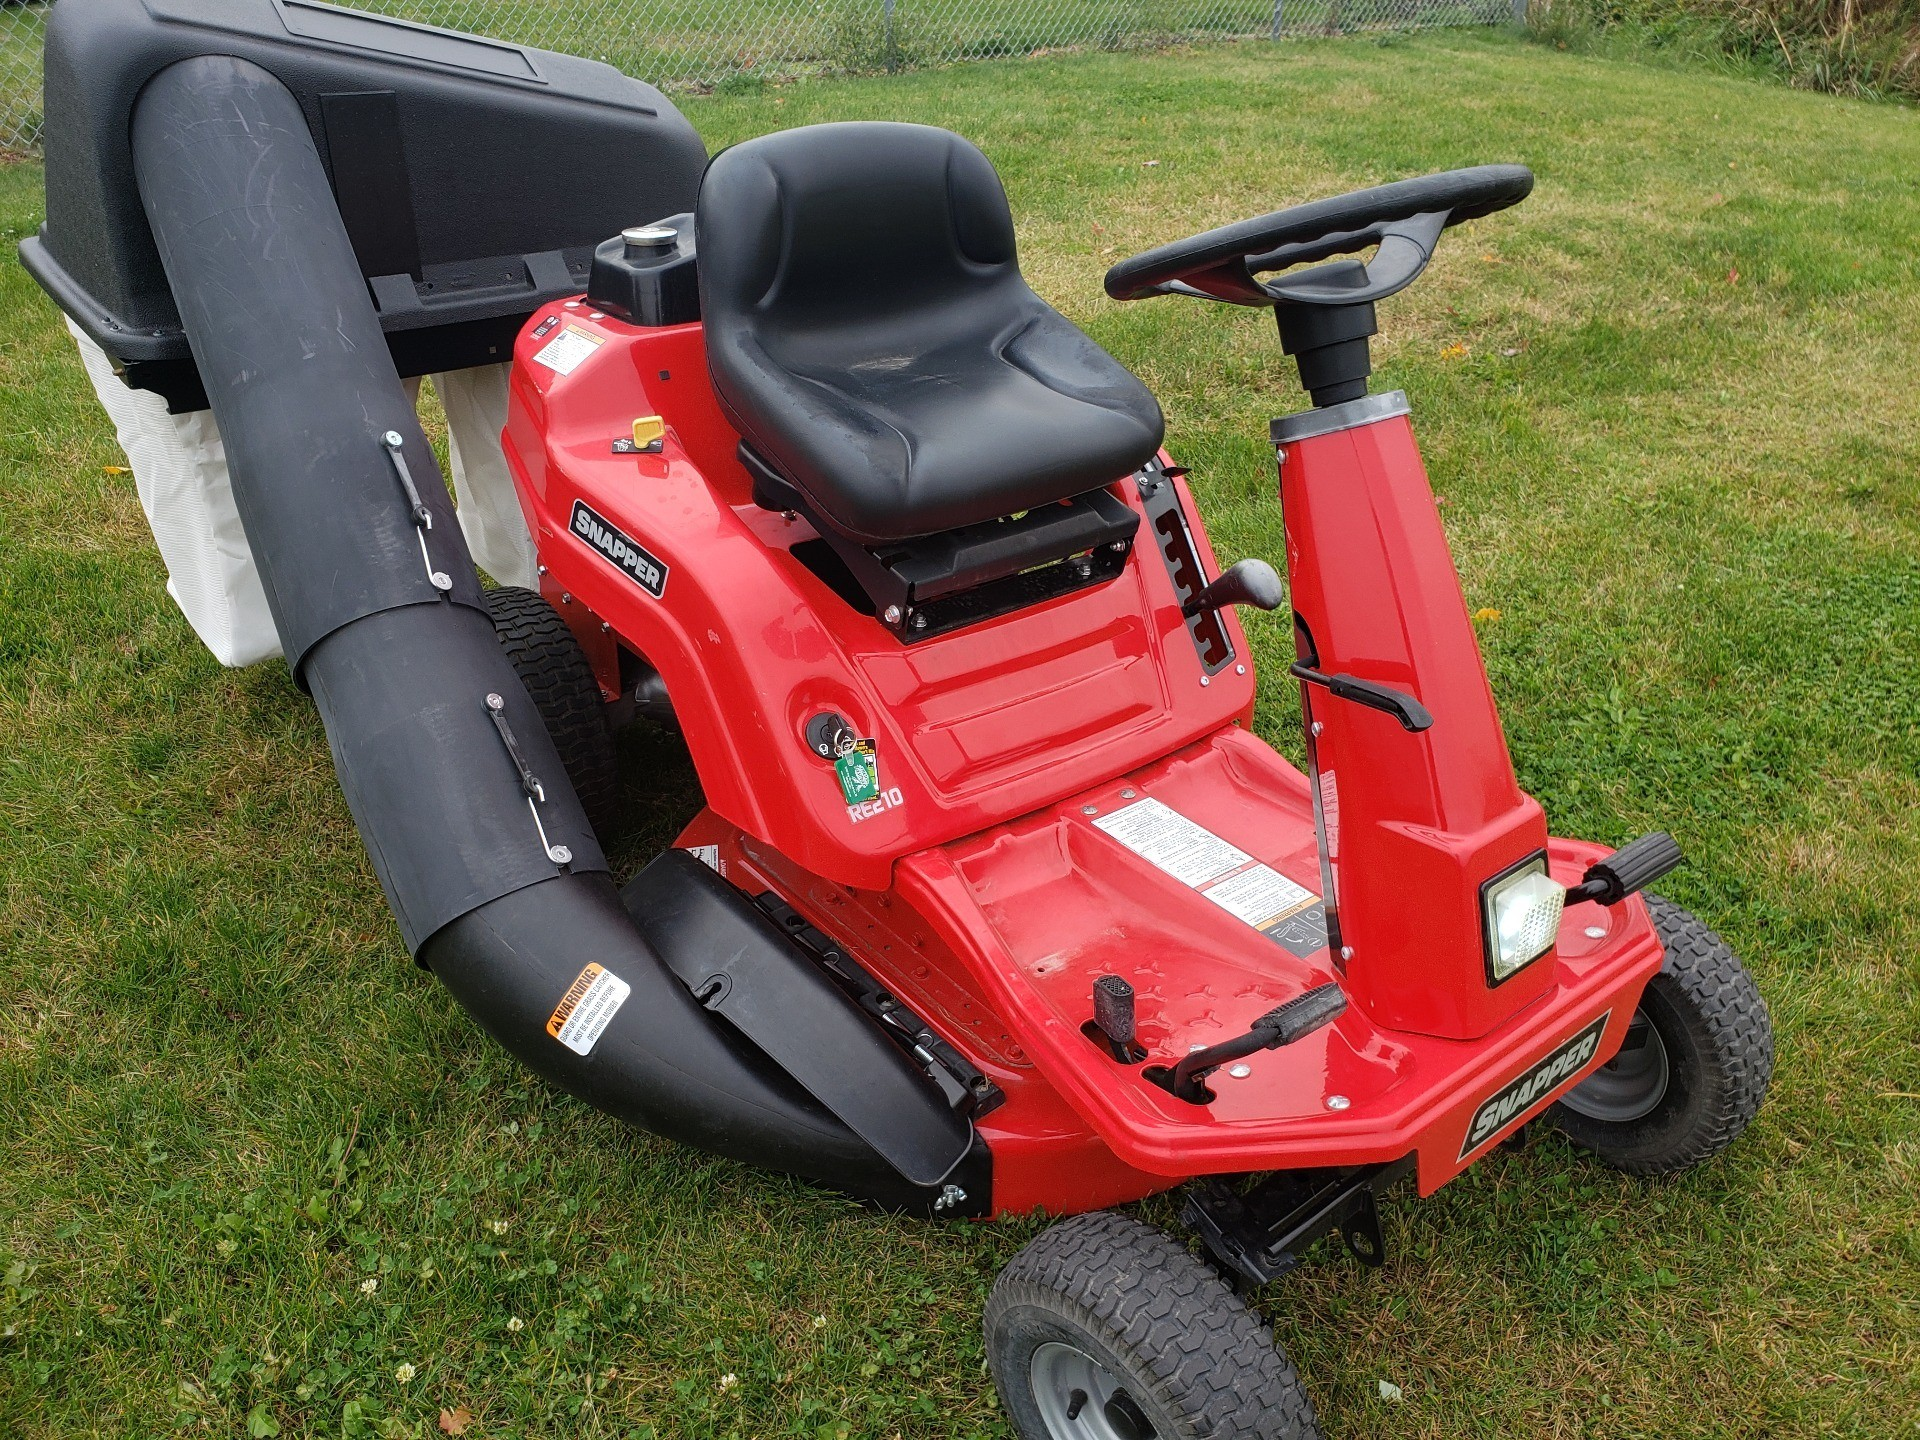 Used Snapper Rear Engine Riding Lawn Mowers Re210 Lawn Mowers In Fond Du Lac Wi Stock Number U487324